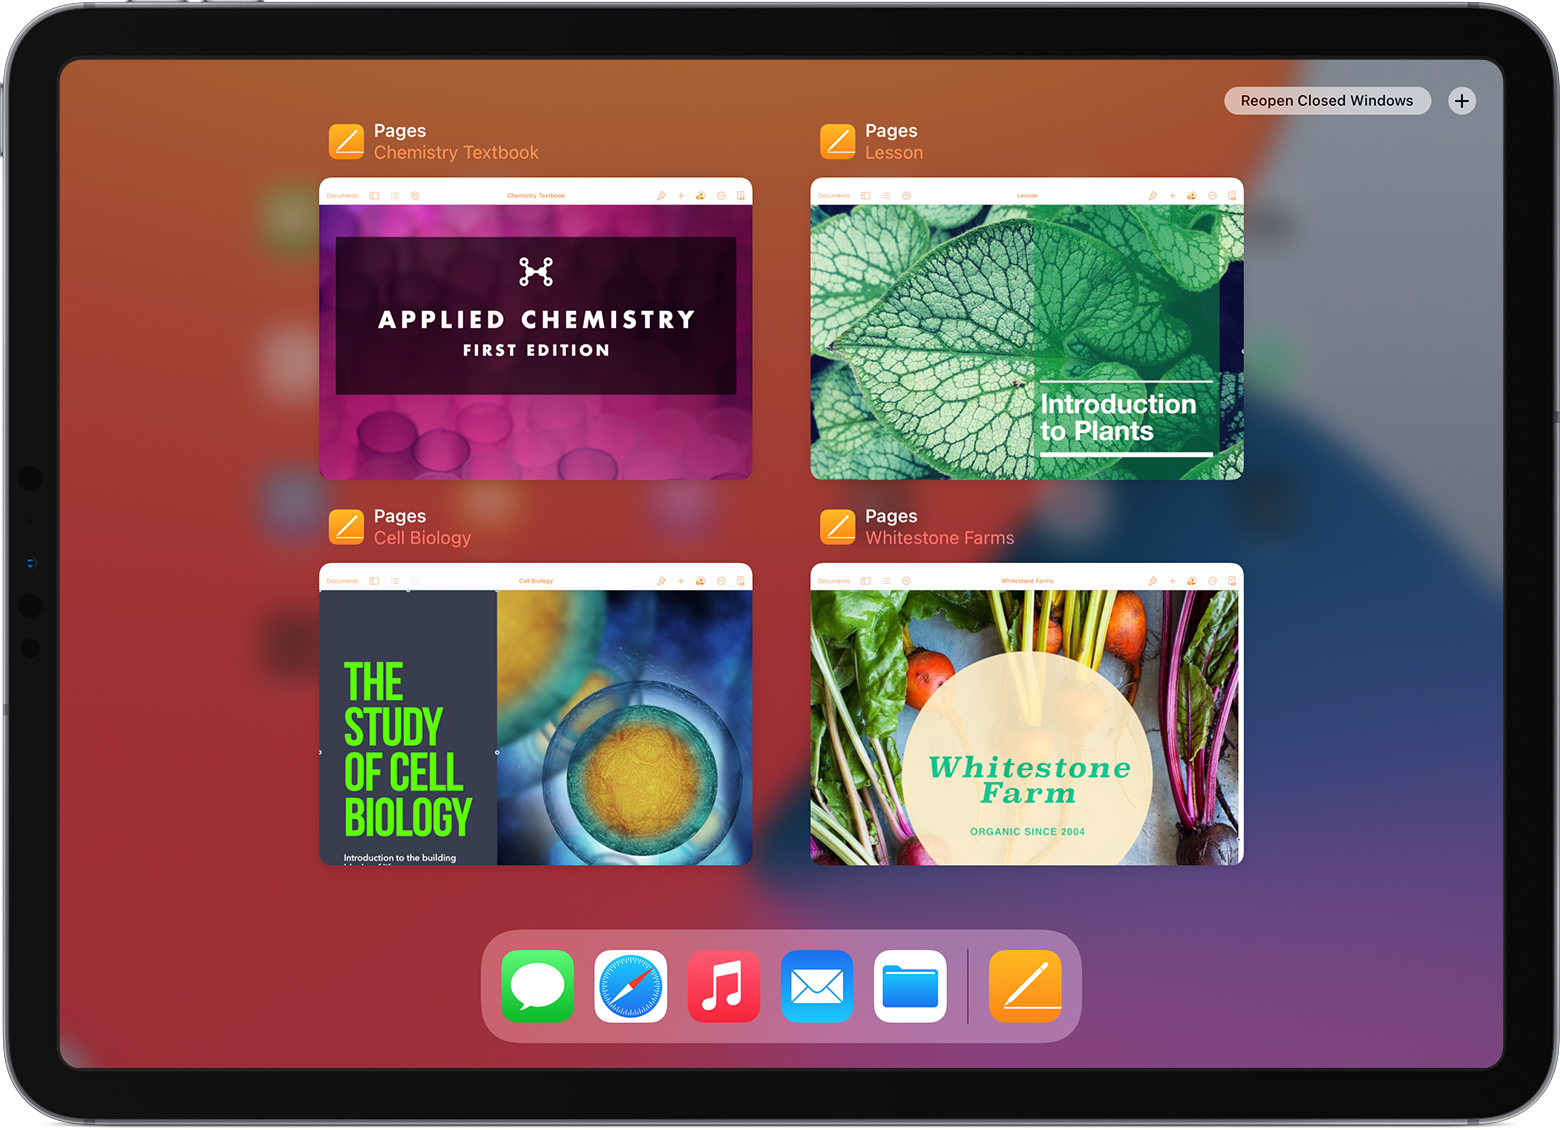 iPad Pro displaying Pages open documents in App Exposé